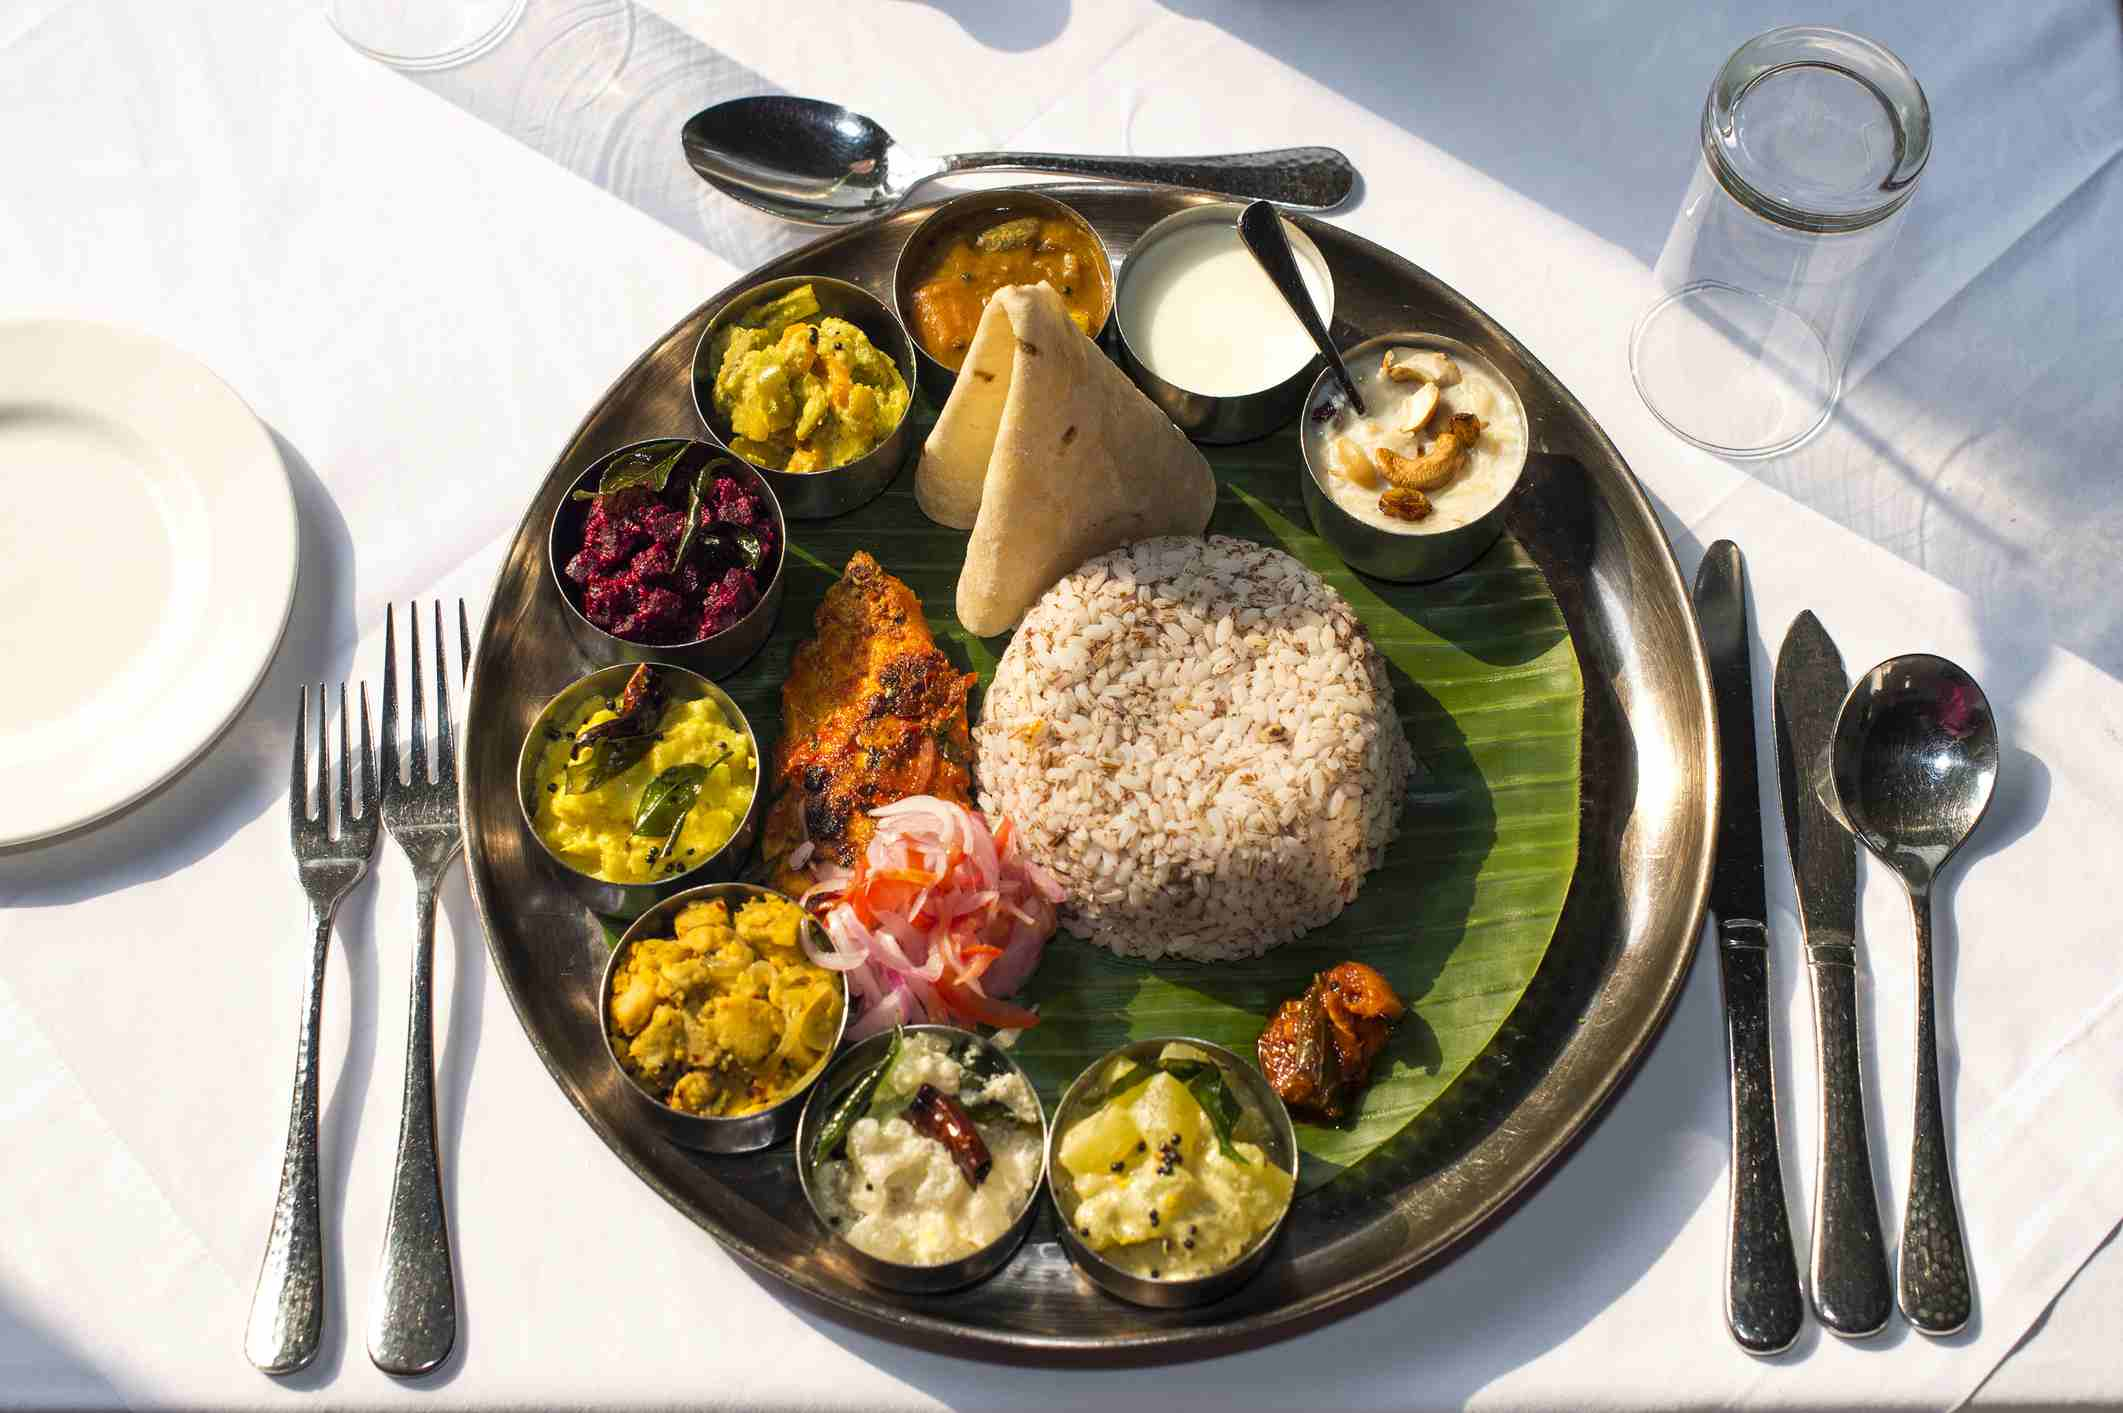 South Indian meal.